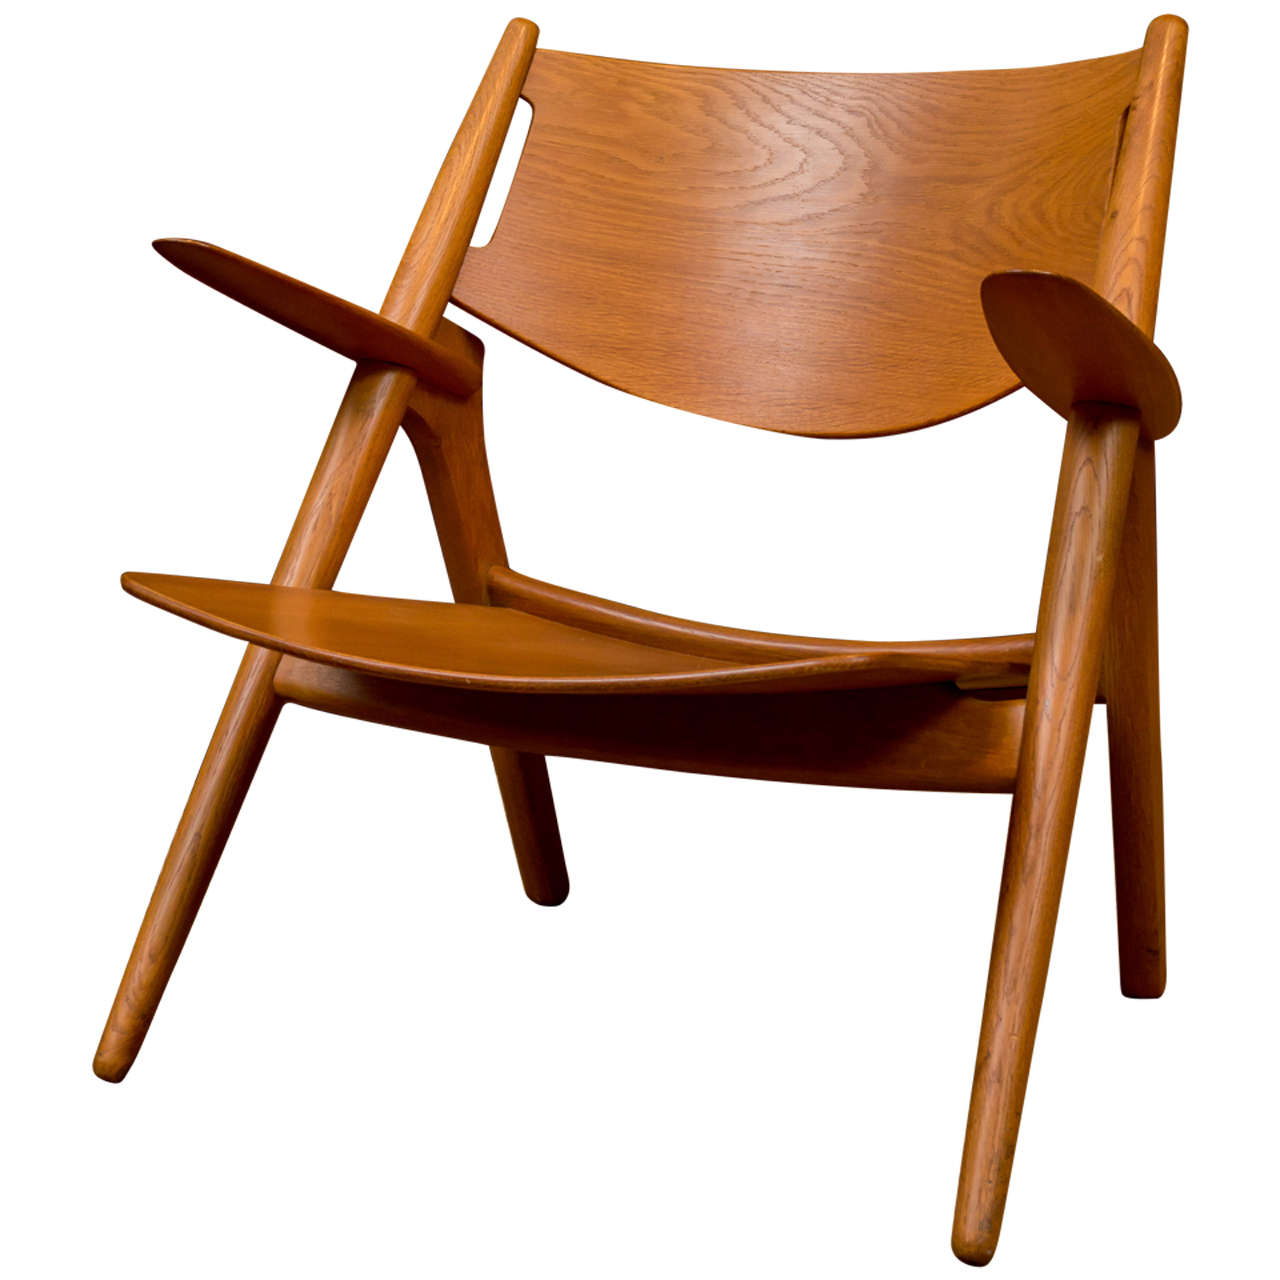 hans j wegner sawbuck chair for sale at 1stdibs. Black Bedroom Furniture Sets. Home Design Ideas